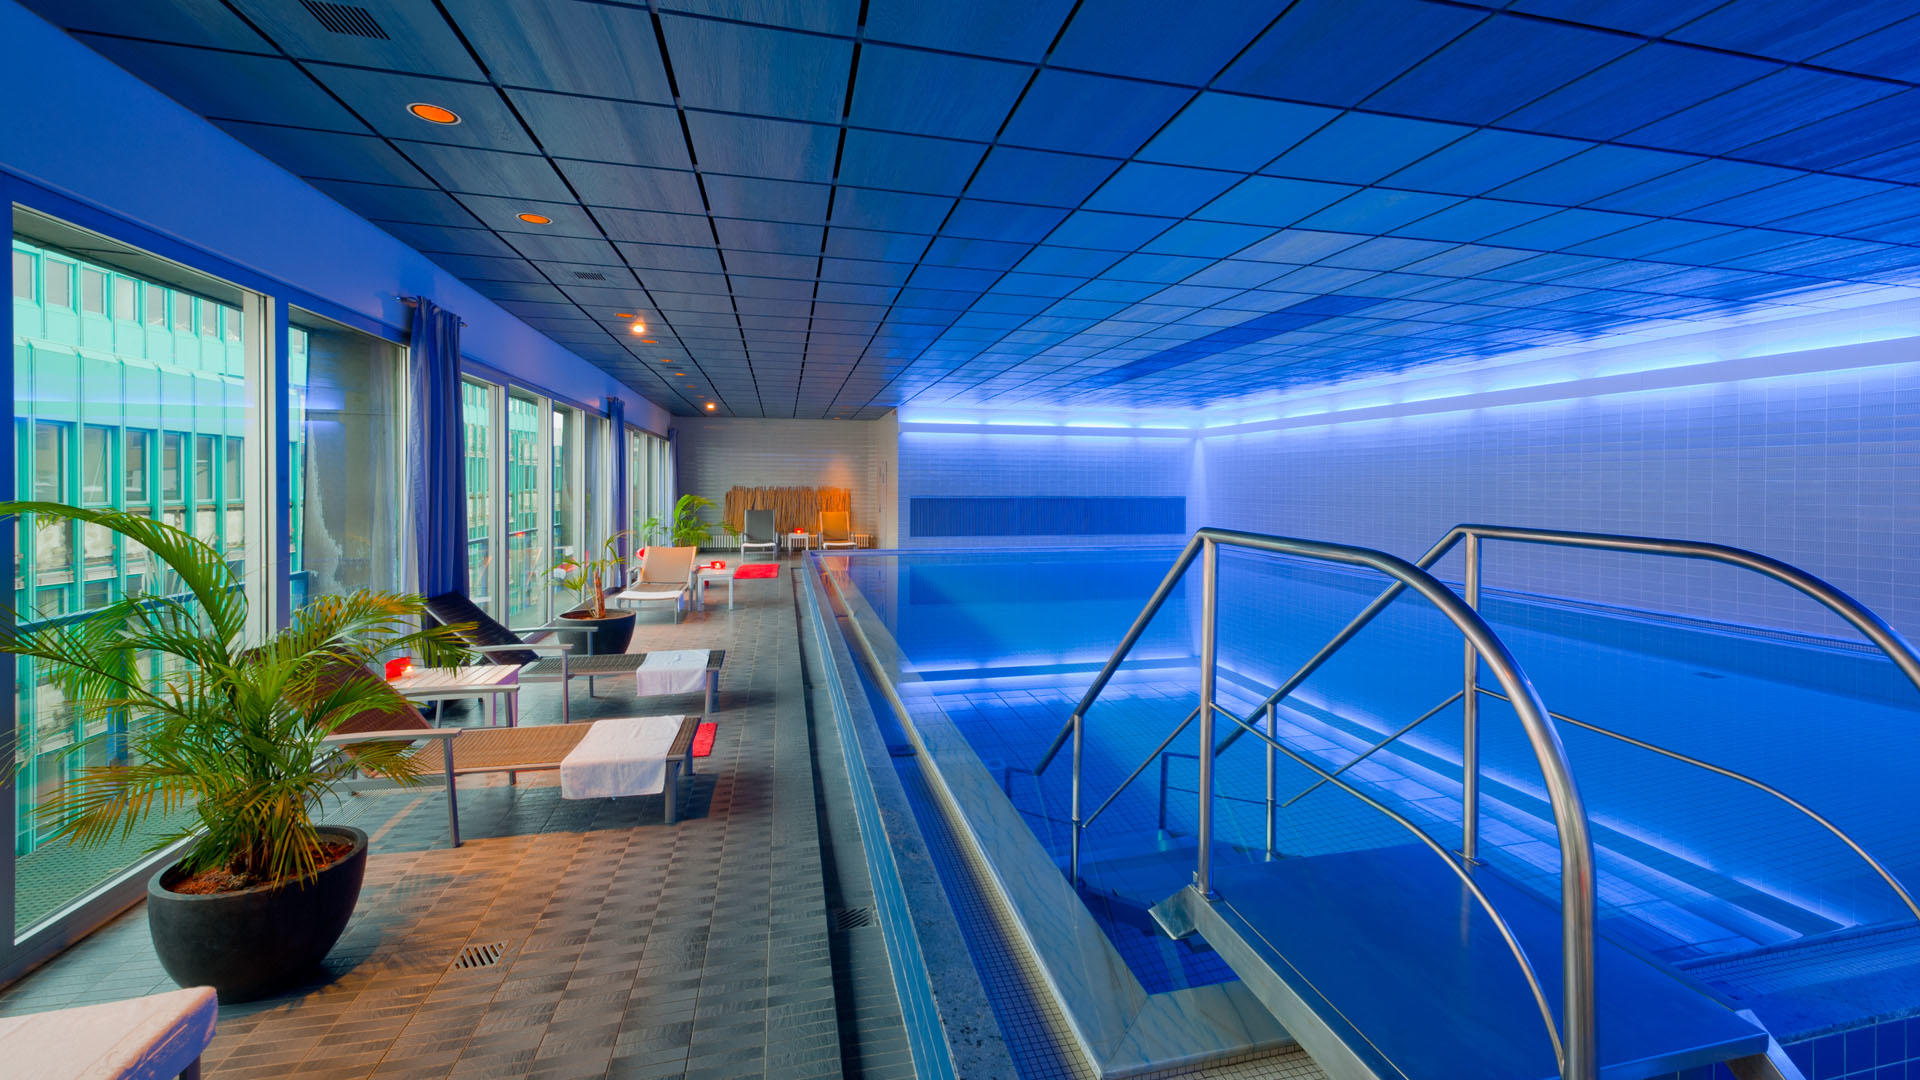 Energy Clinic Spa Pool